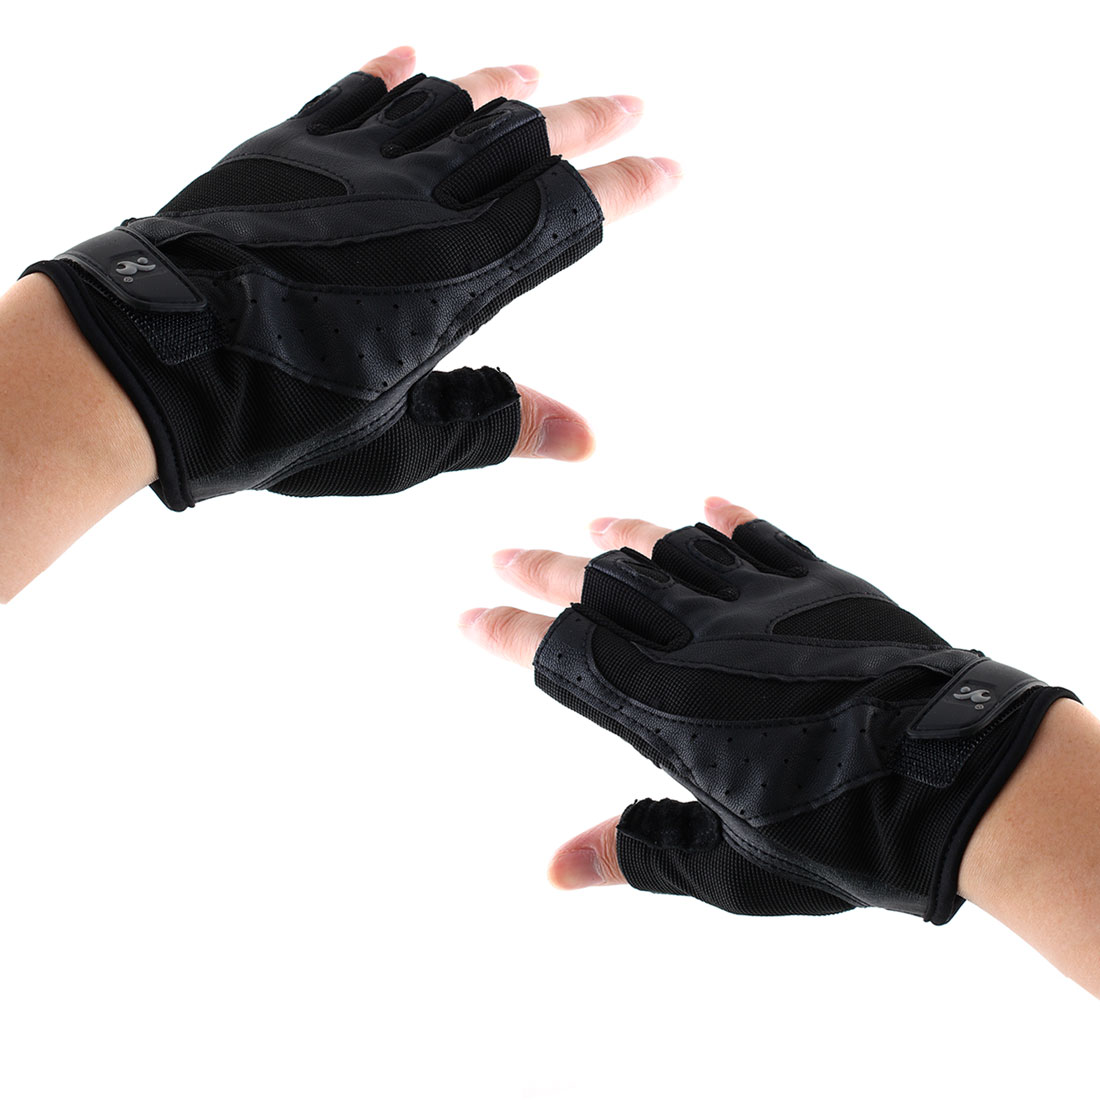 Boodun Authorized Men Sports Weight Lifting Gym Training Workout Fitness Palm Support Gloves Size S Pair